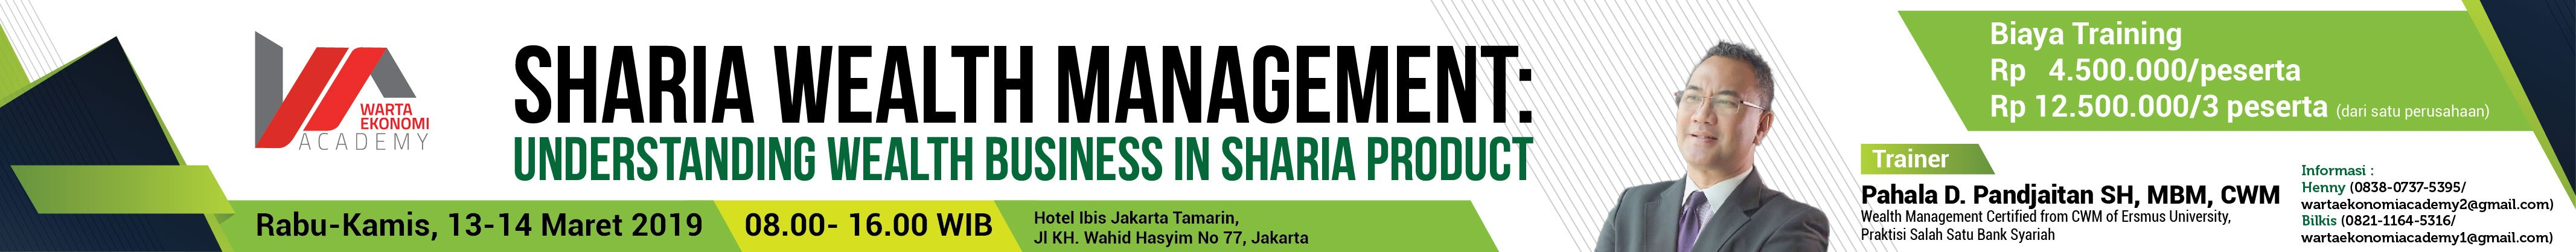 Sharia wealth management